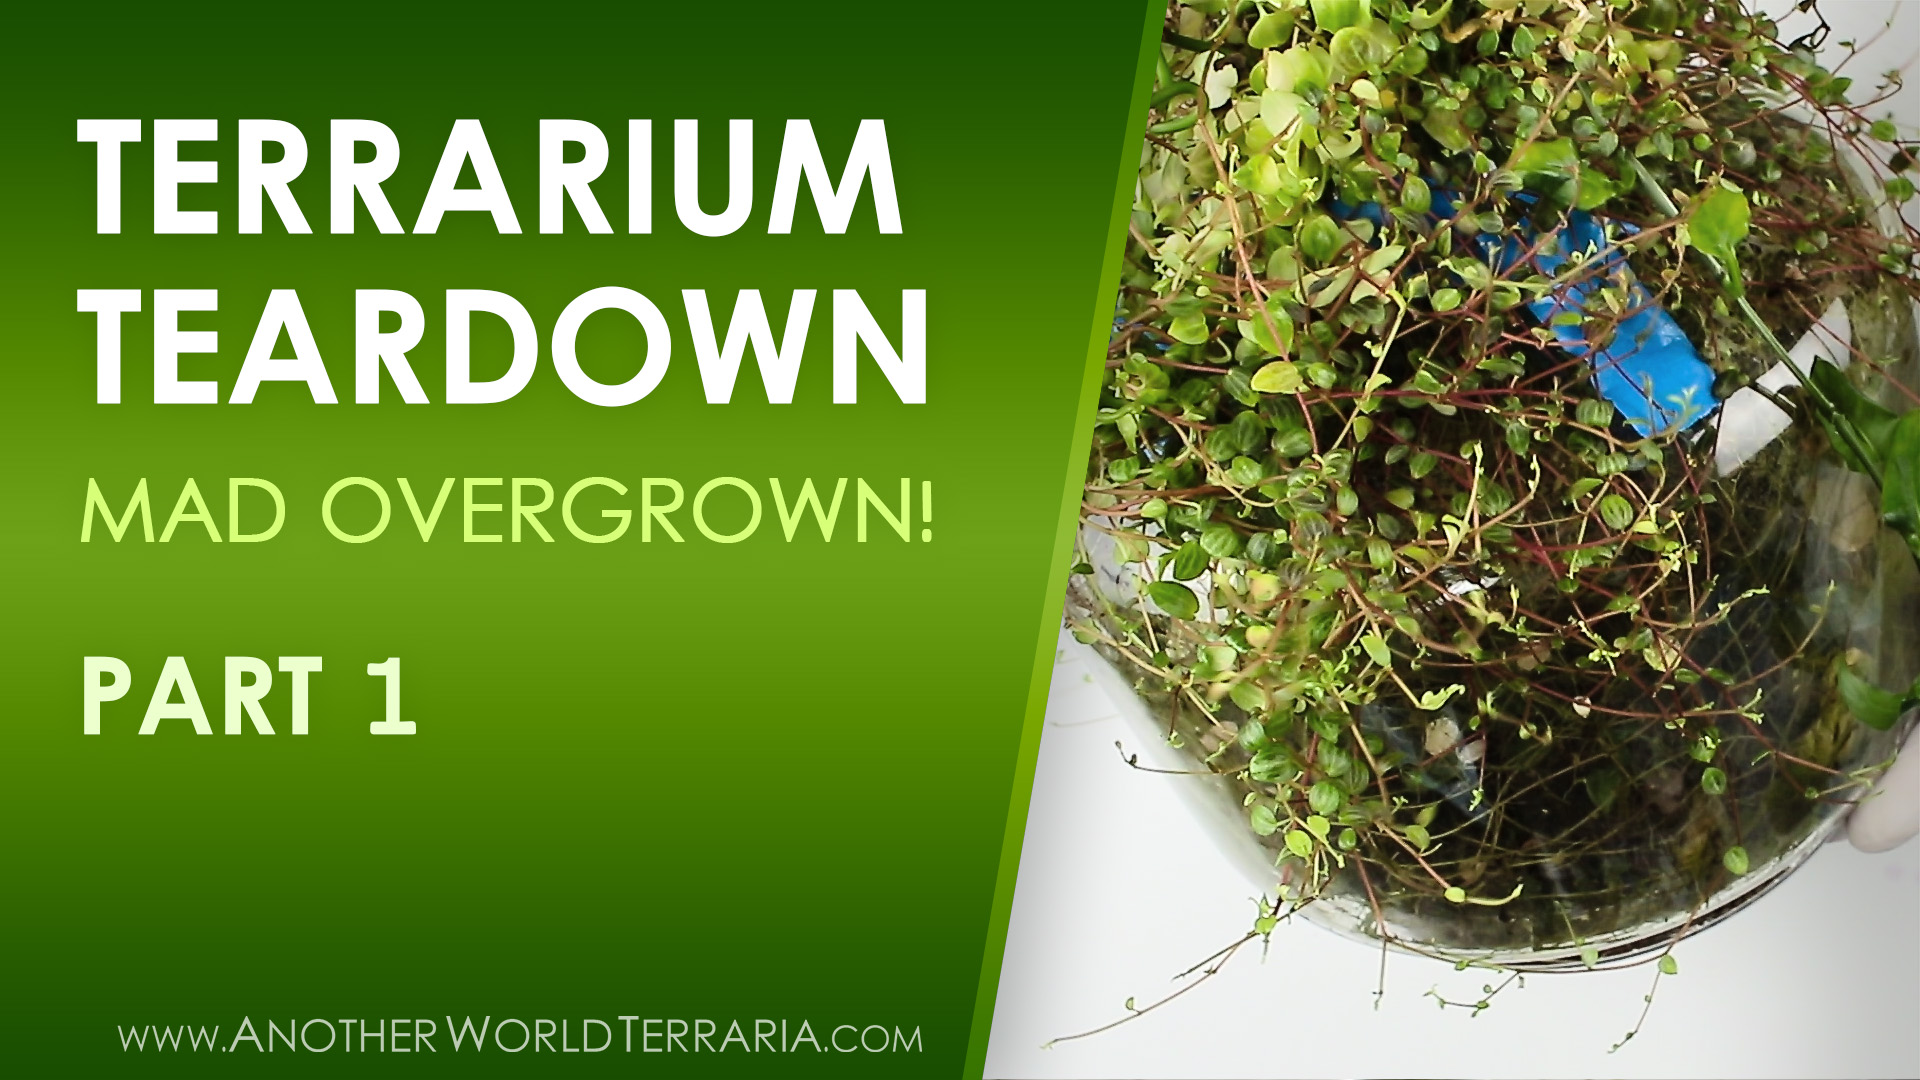 Rare Plant Terrarium Teardown (Crazy Overgrown!) Part 1